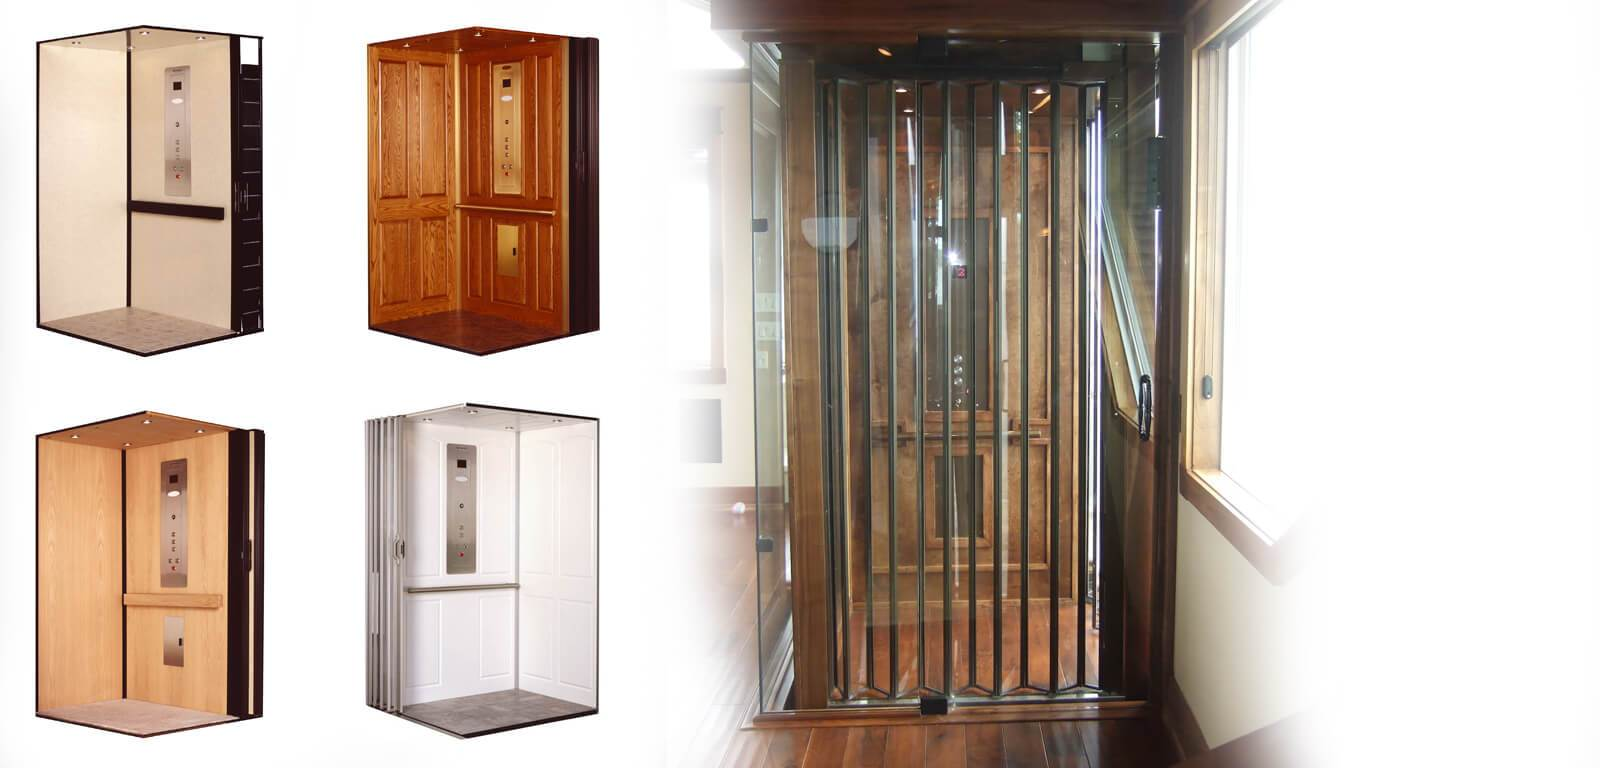 Remarkable home elevator design images ideas house for Price of home elevator